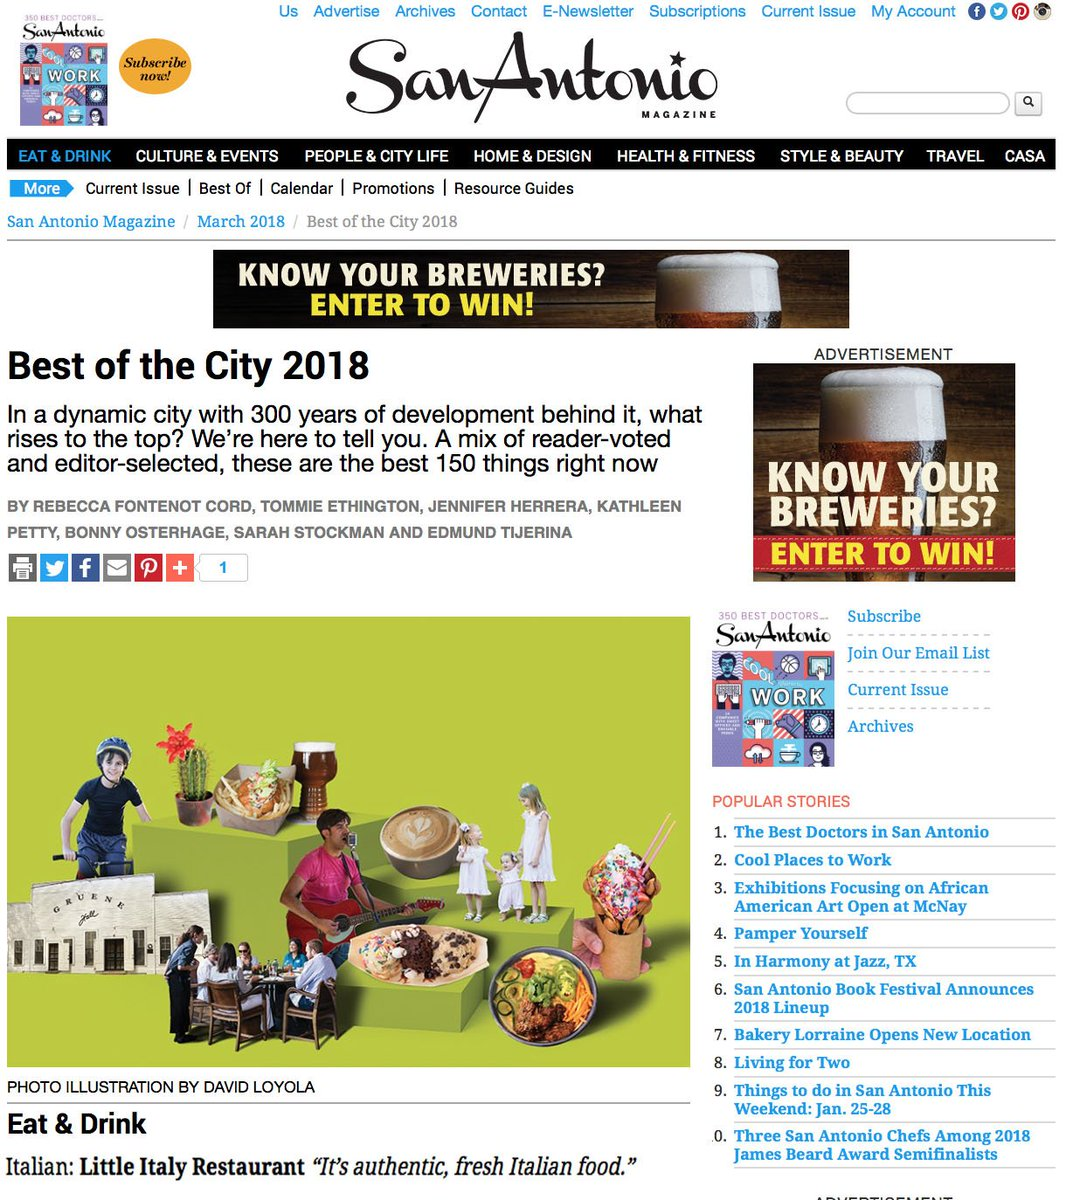 Littly italy satx on twitter hooray we have been named best we have been named best italian by san antonio magazine in this years best of the city sanantoniomagazine bestofthecity satx sanantoniomag publicscrutiny Images